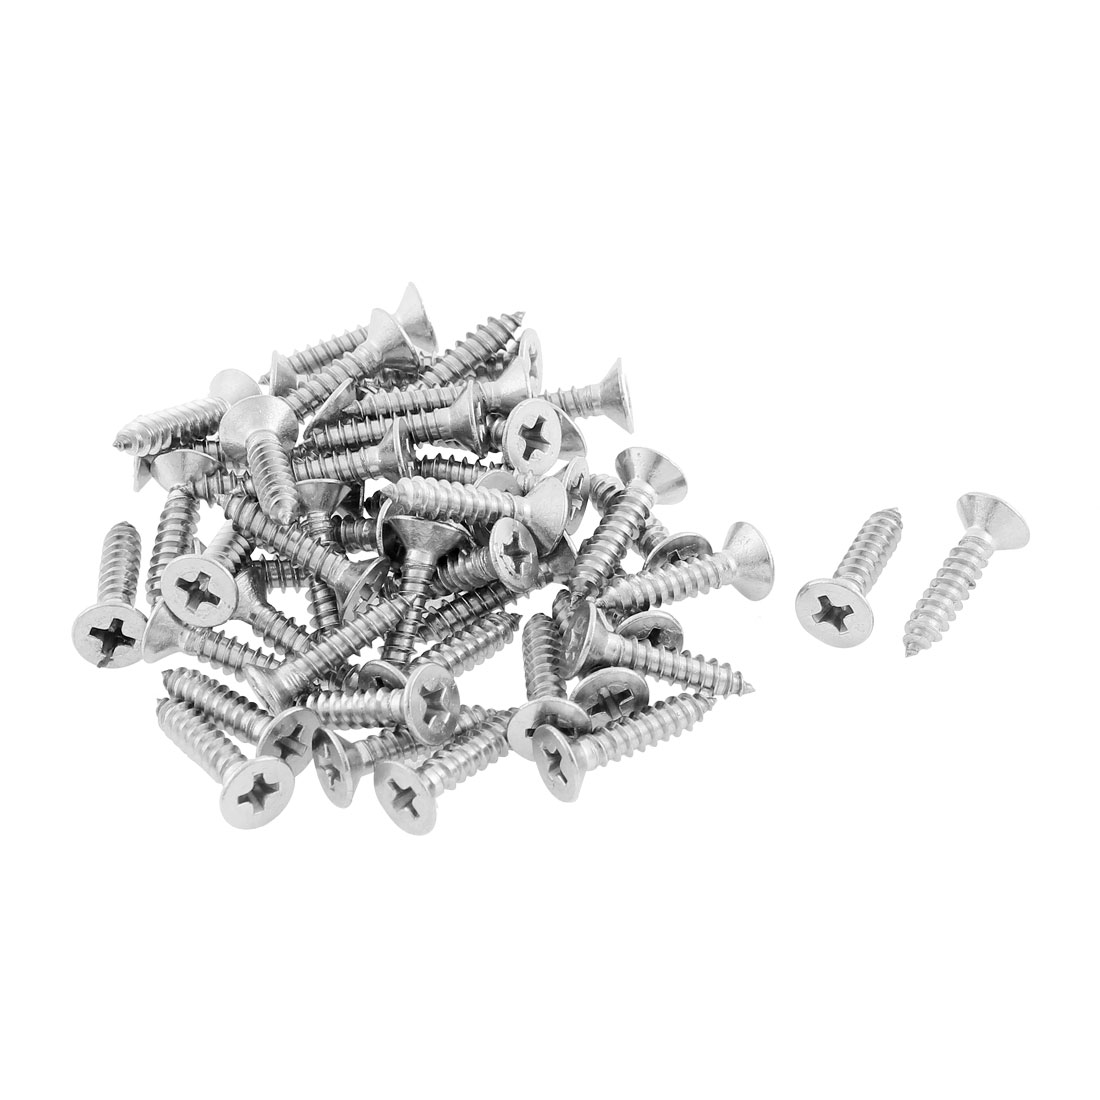 50 Pcs 4.2mmx19mm Stainless Steel Phillips Flat Head Sheet Self Tapping Screws